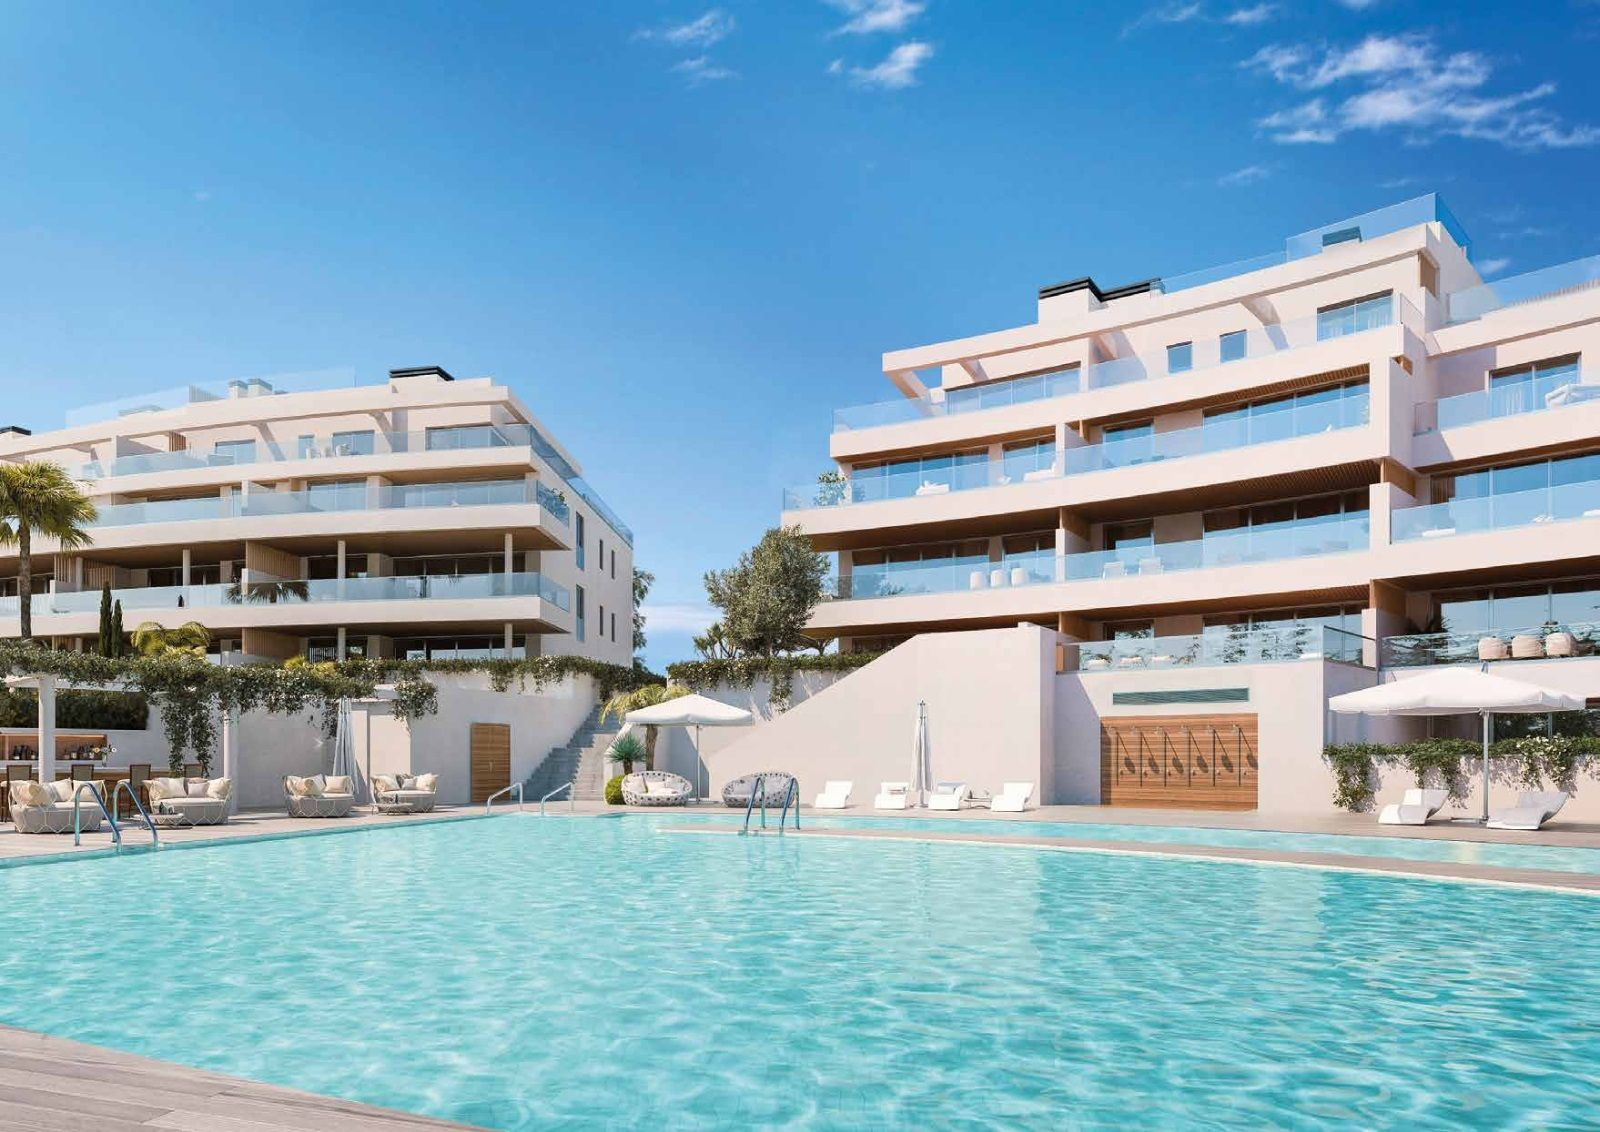 Luxury apartments for sale in La Cala de Mijas